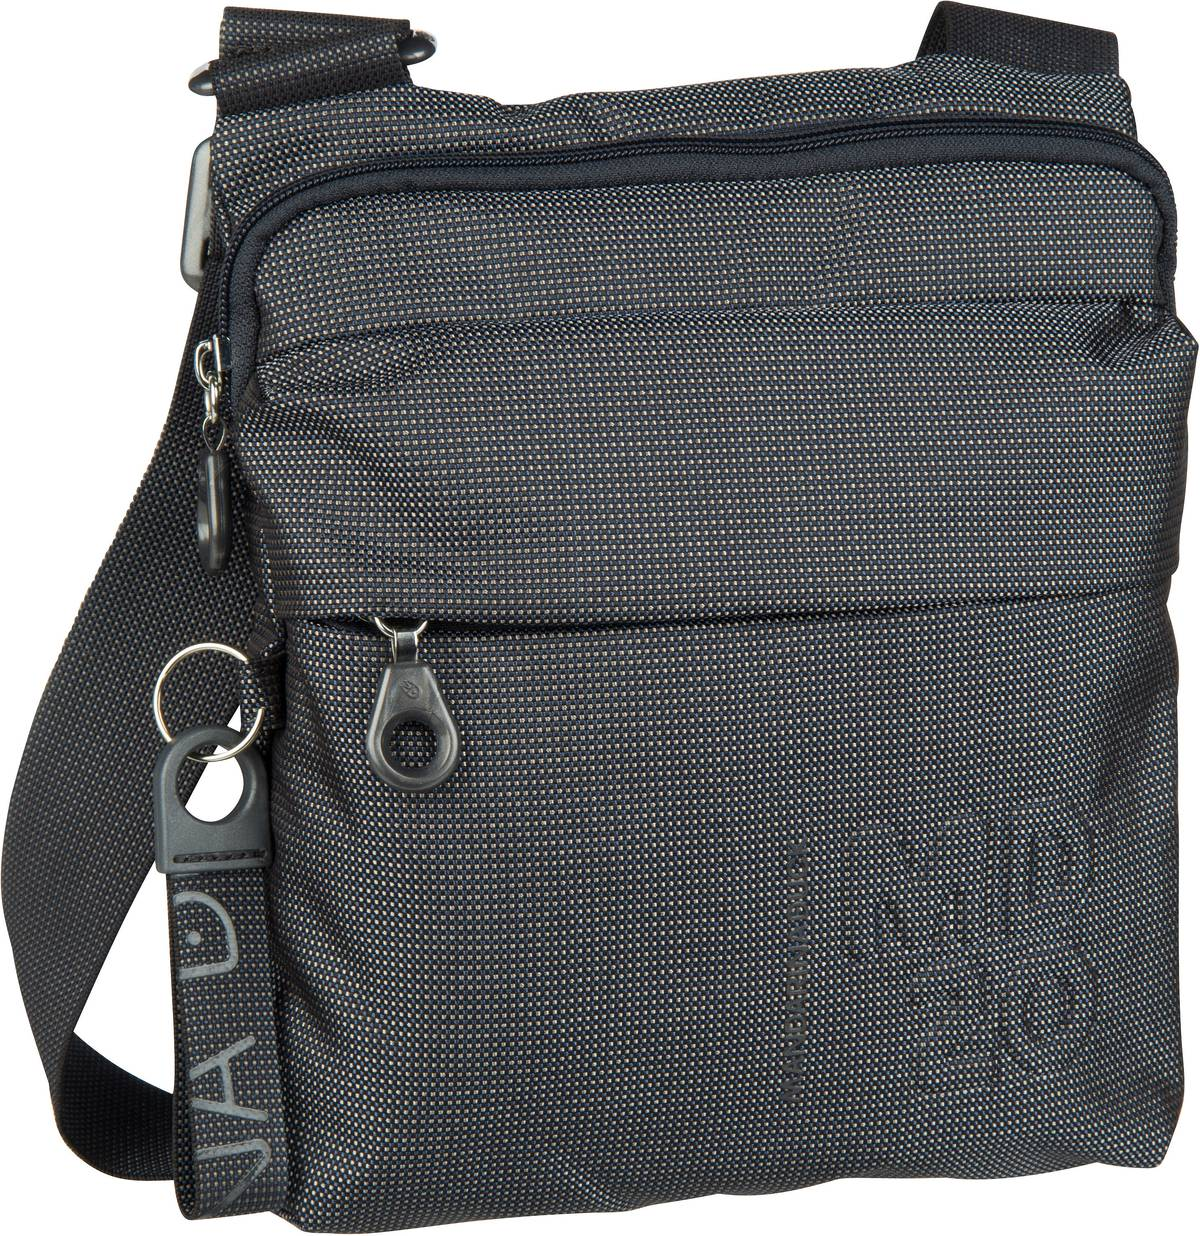 Umhängetasche MD20 Small Crossover Bag QMT04 Steel